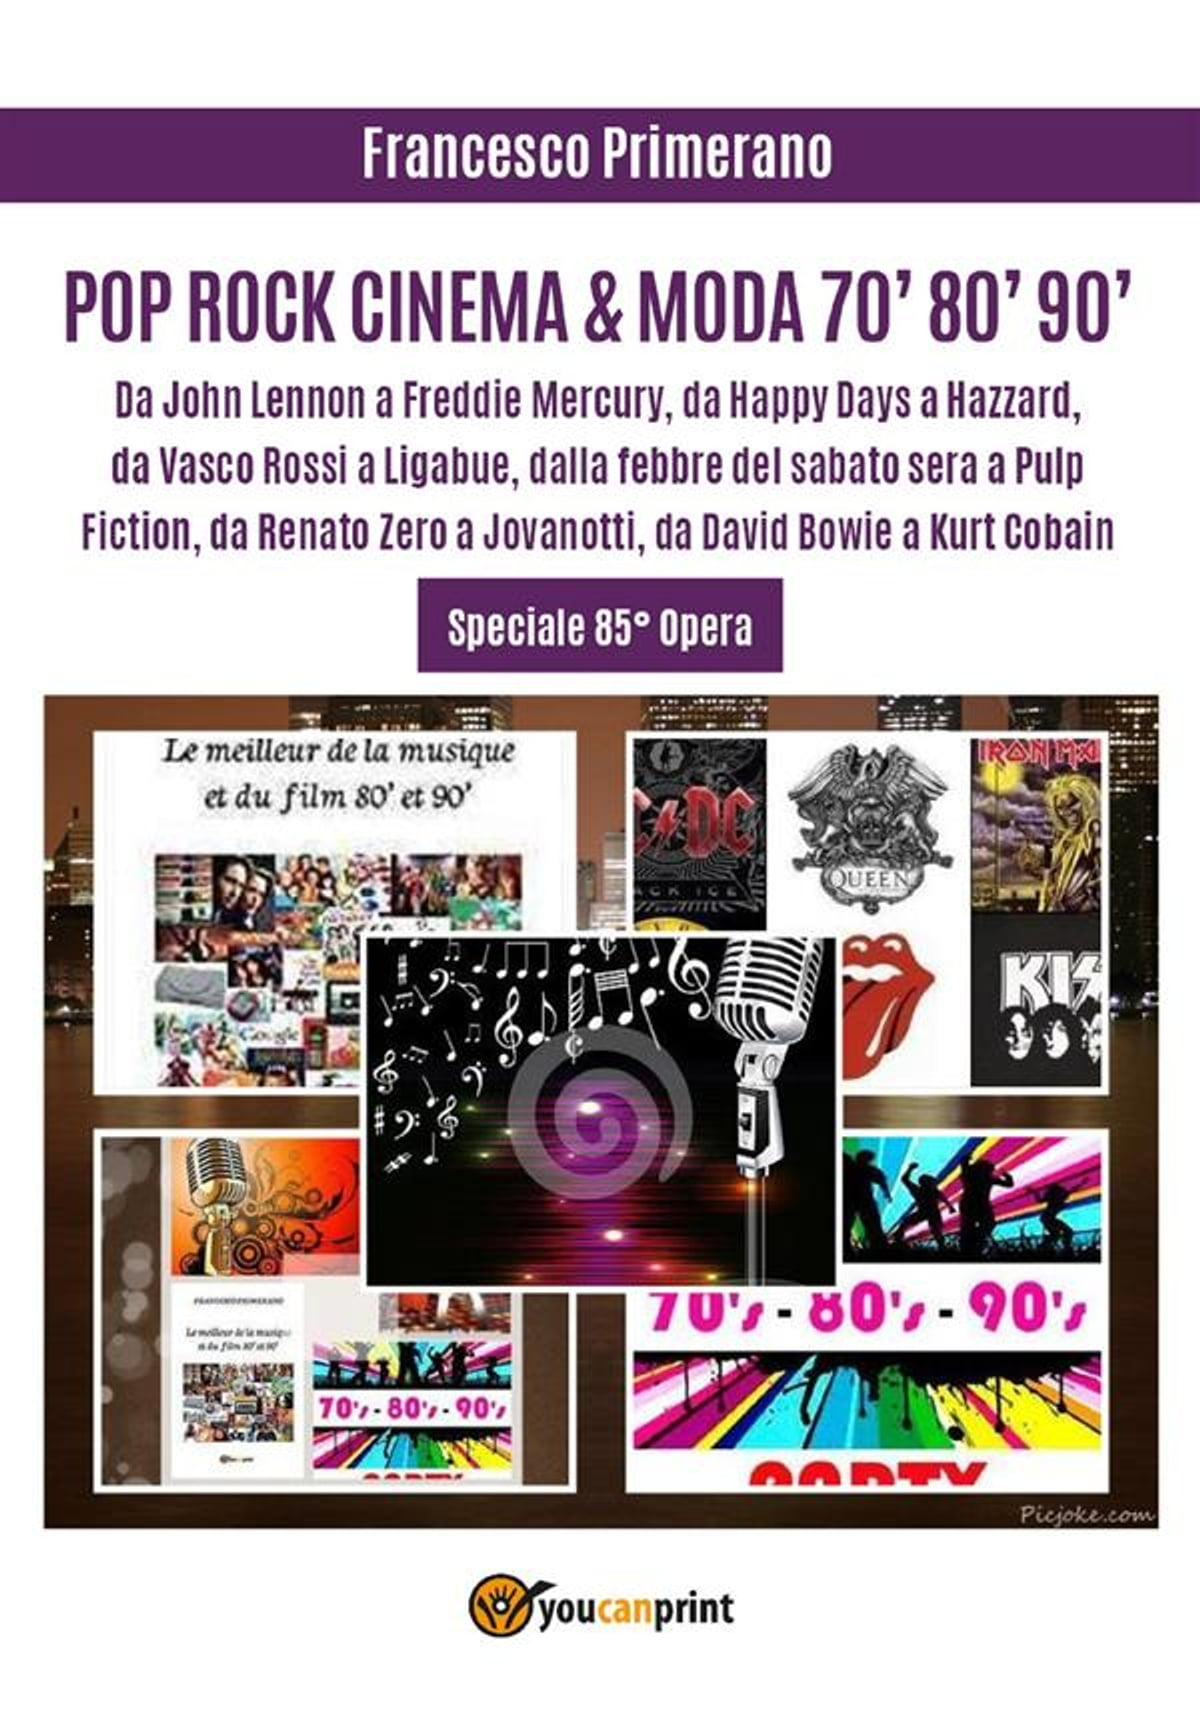 Vasco Cinema Pop Rock Cinema Moda 70 80 90 Da John Lennon A Freddie Mercury Da Happy Days A Hazzard Da Vasco Rossi A Ligabue Dalla Febbre Del Sabato Sera